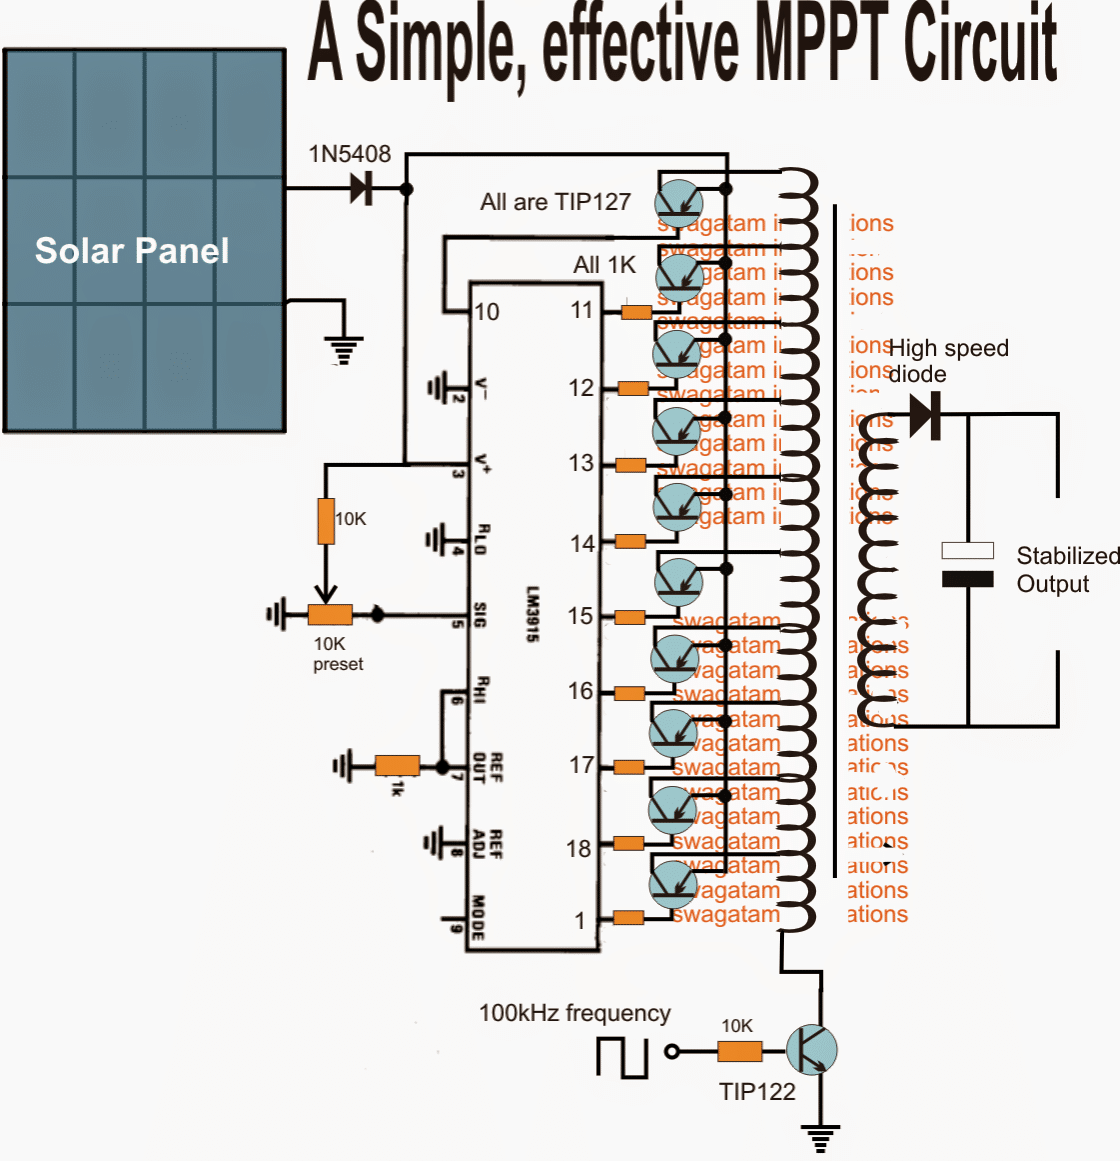 Powerpoints Light Switches besides 12v Car Laptop Charger Circuit Using also Synchronous Switch Mode Mppt Battery together with Solar Cell Mppt also Projecta 12v 200  Vsr. on solar charger controller circuit